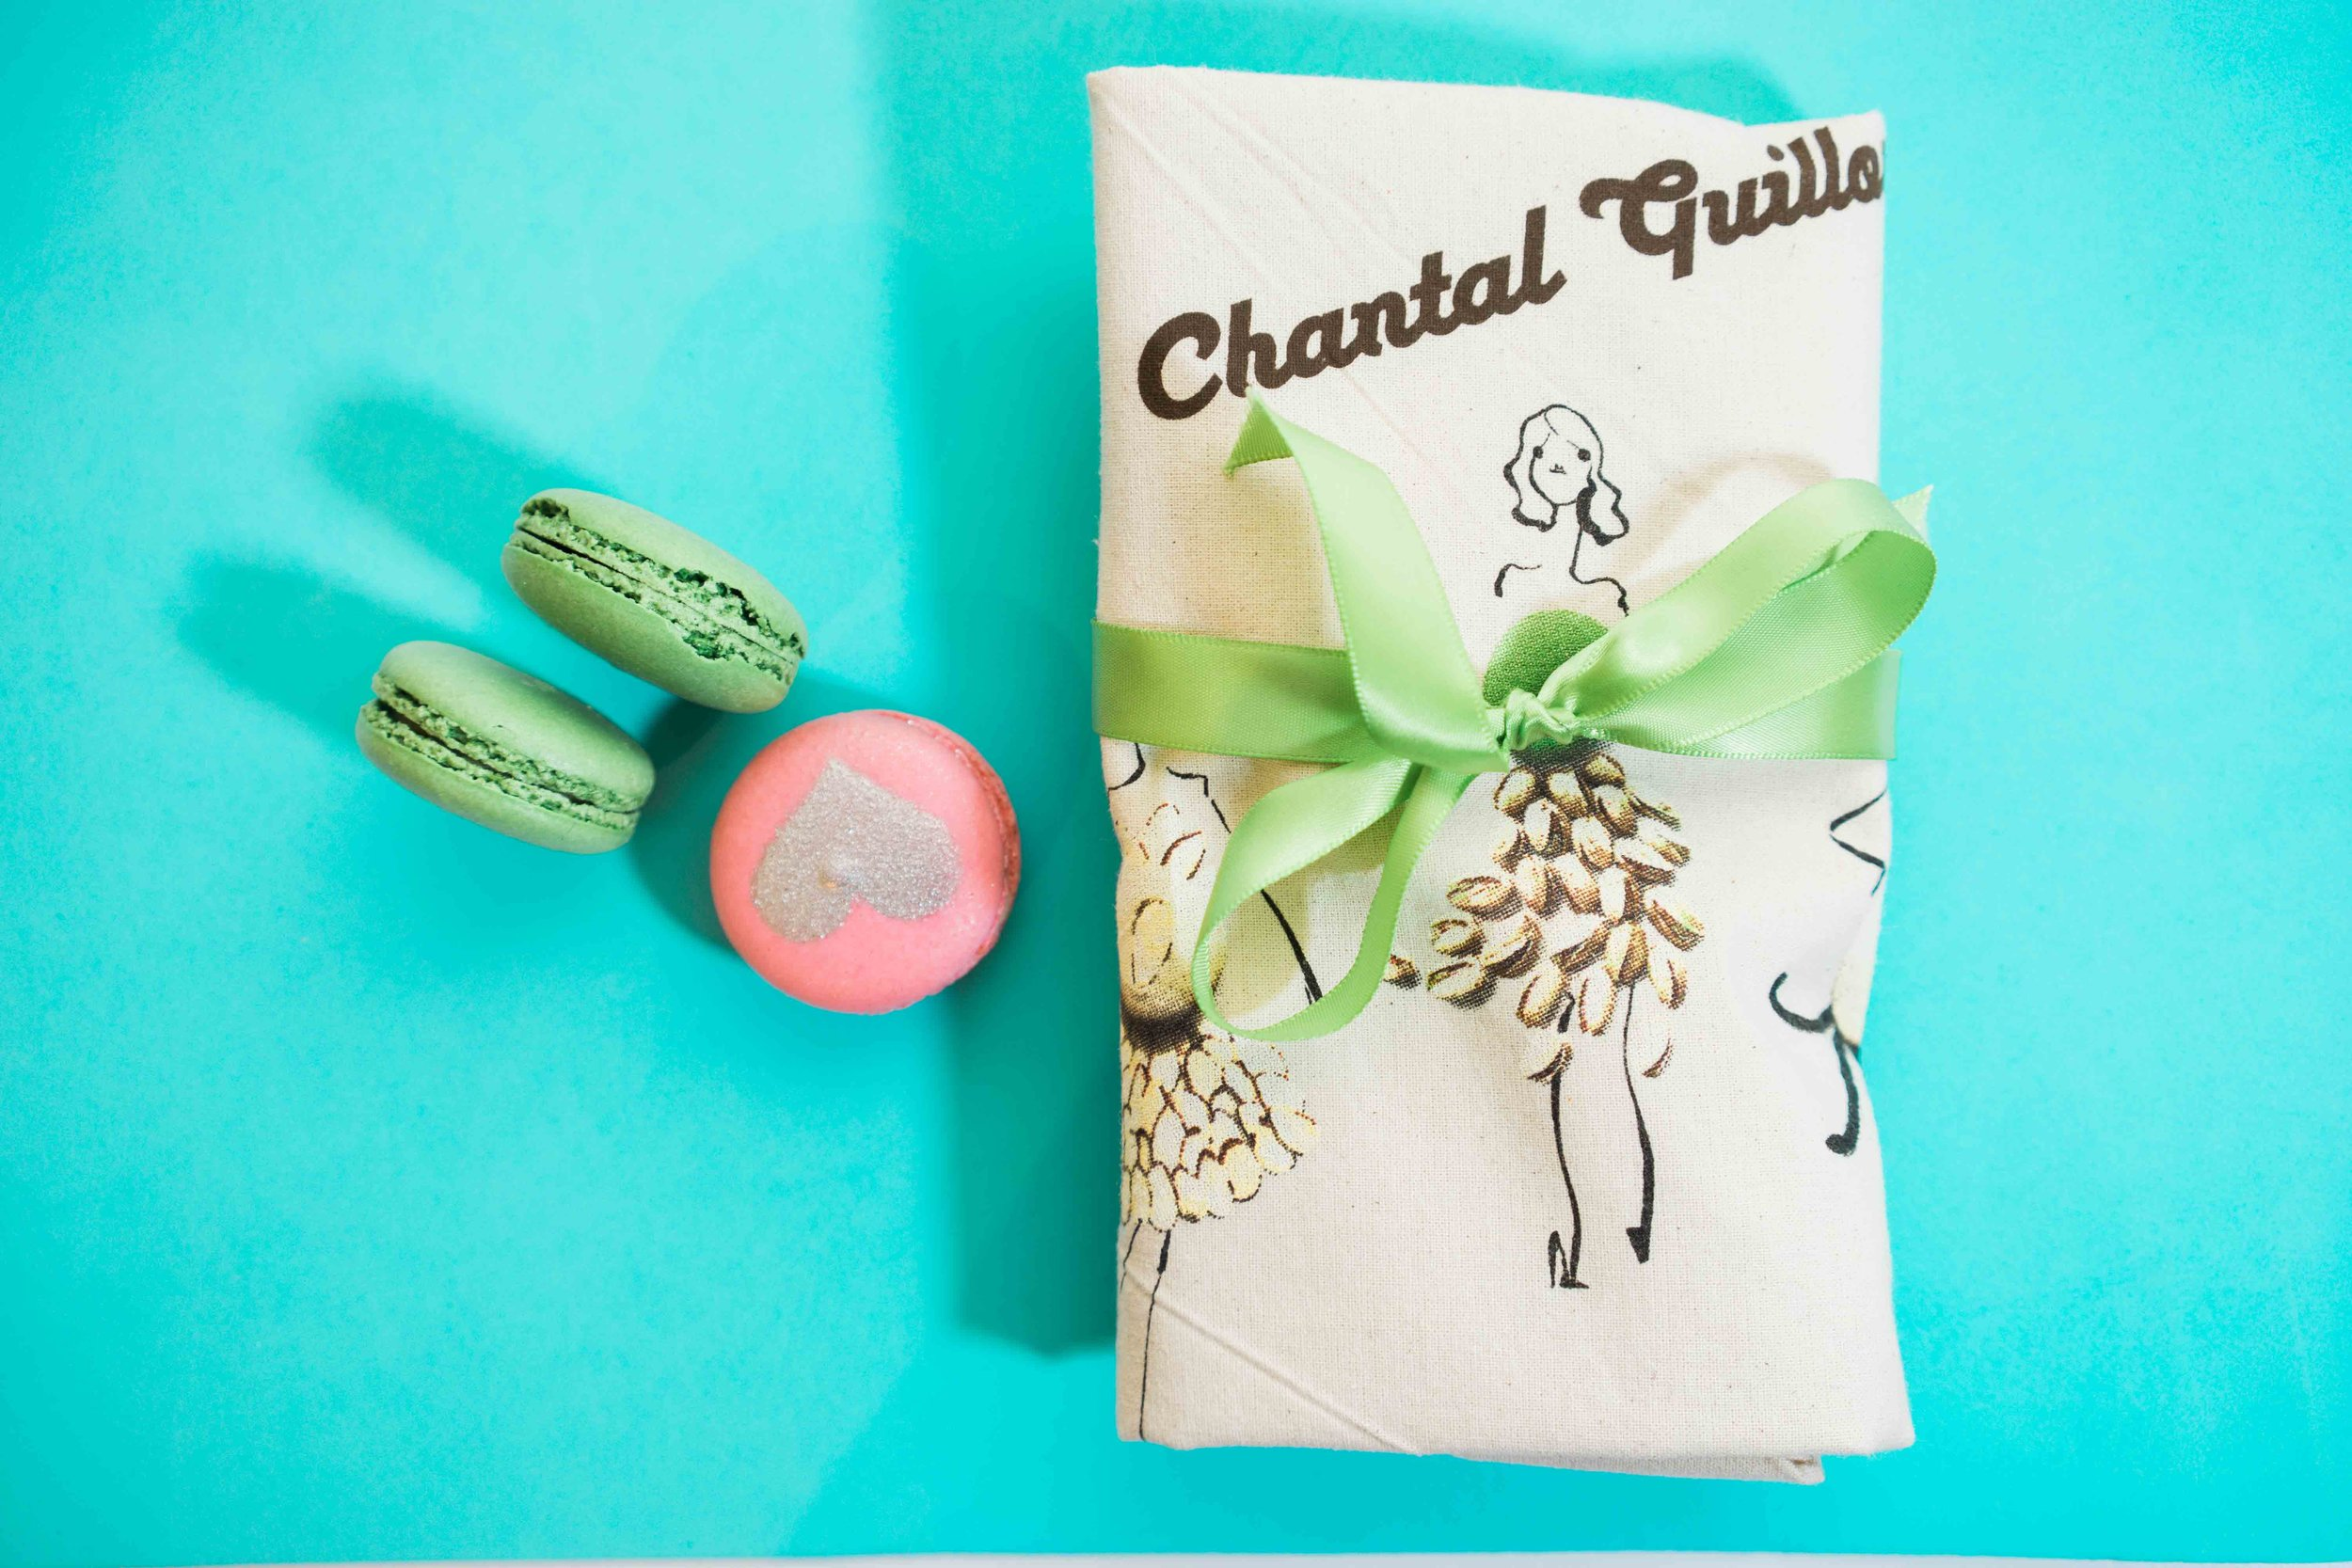 Cherry blossom macaron with Chantal Guillon bag picture.